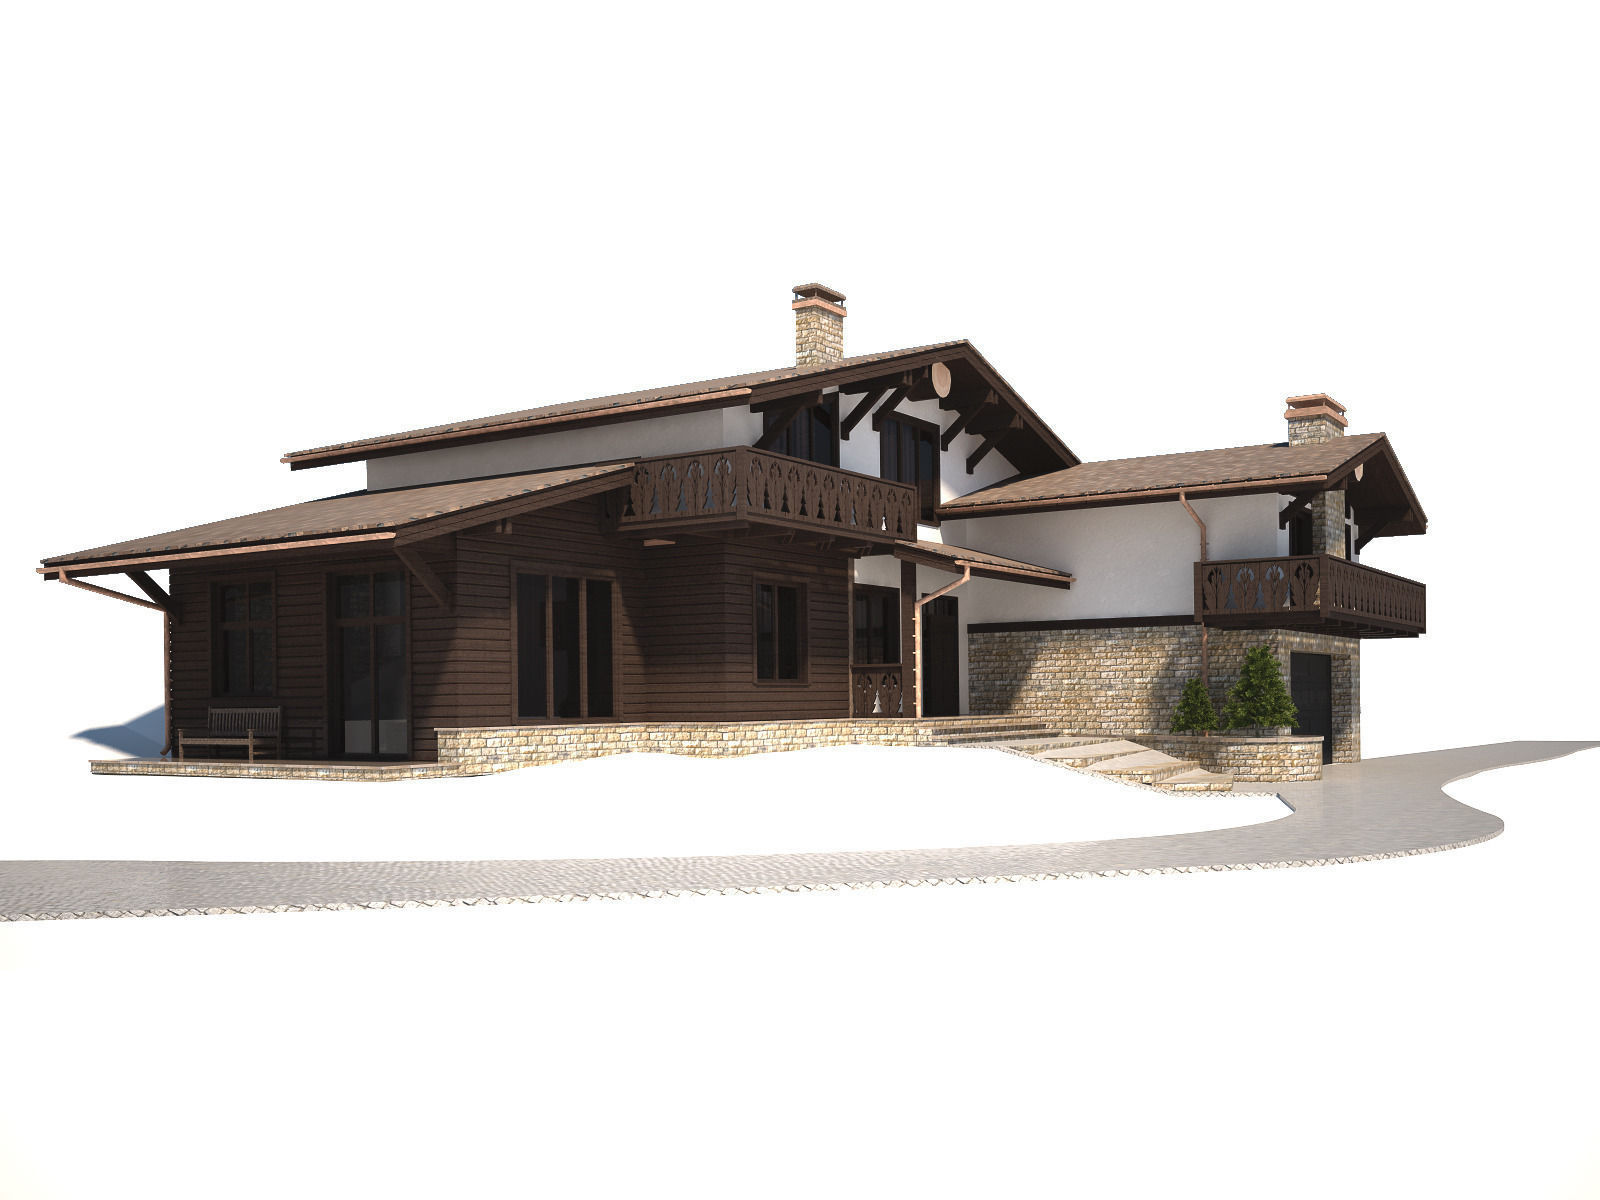 Cottage house 3d model max for 3d max house model